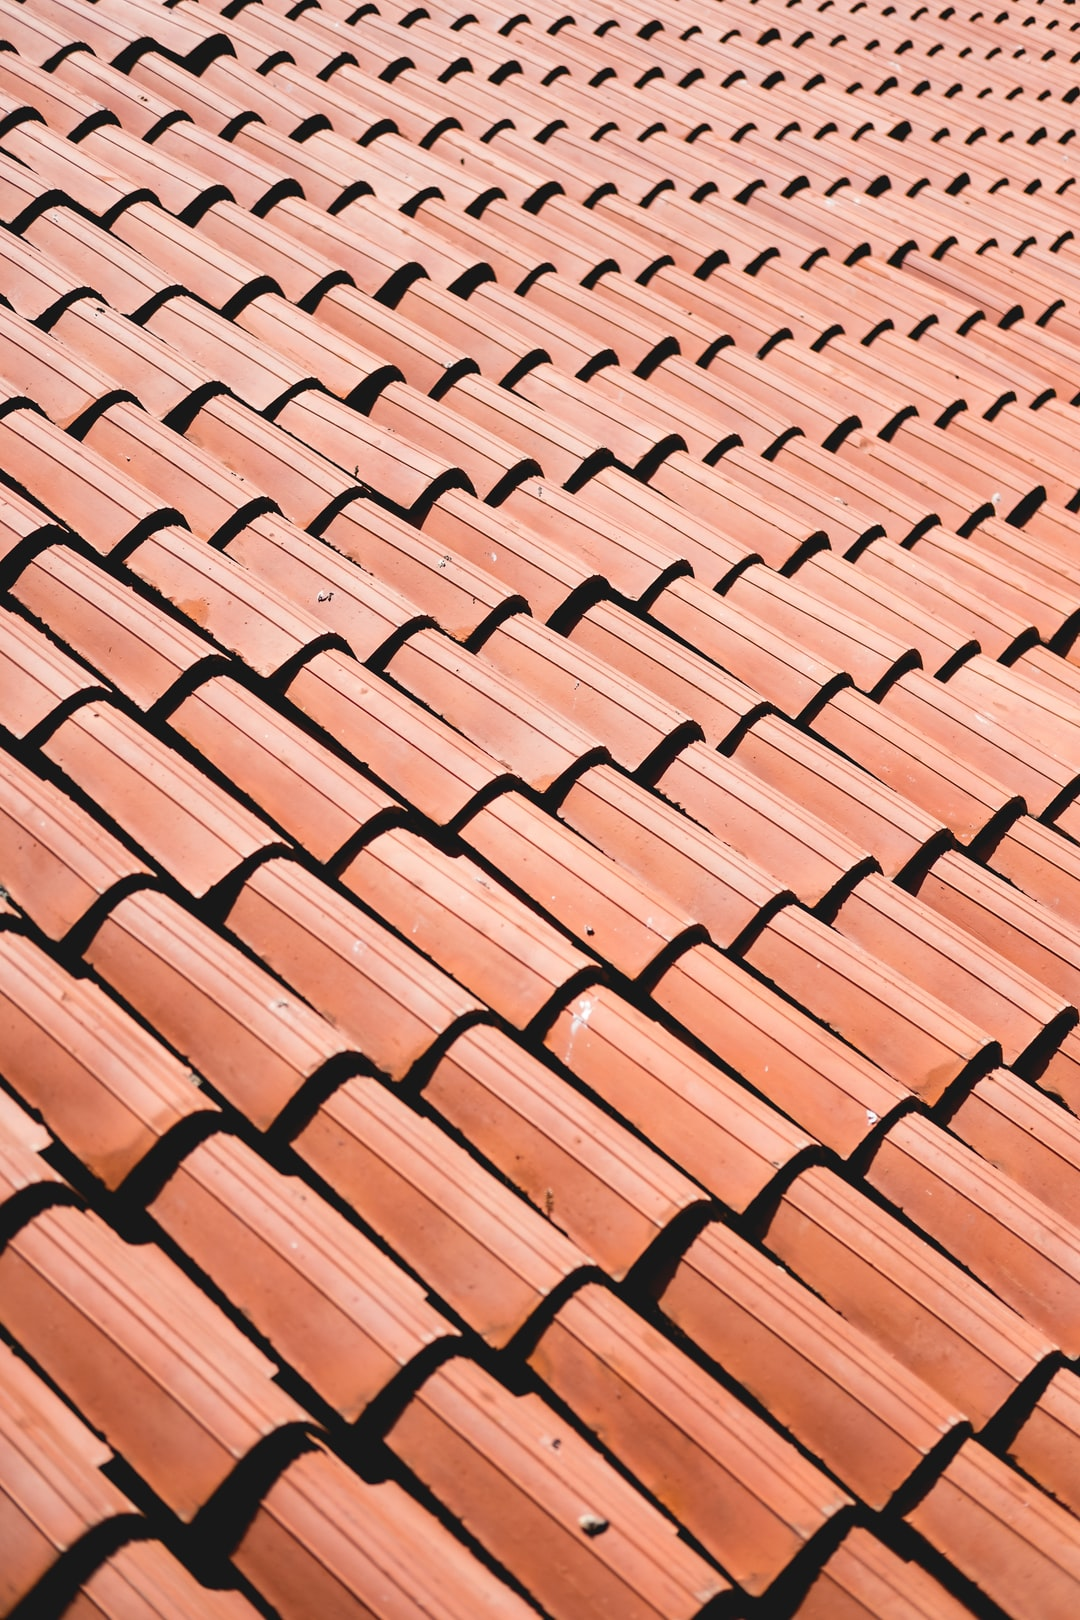 How Long Will a Roof Last? 3 Signs It Needs to Be Replaced Now